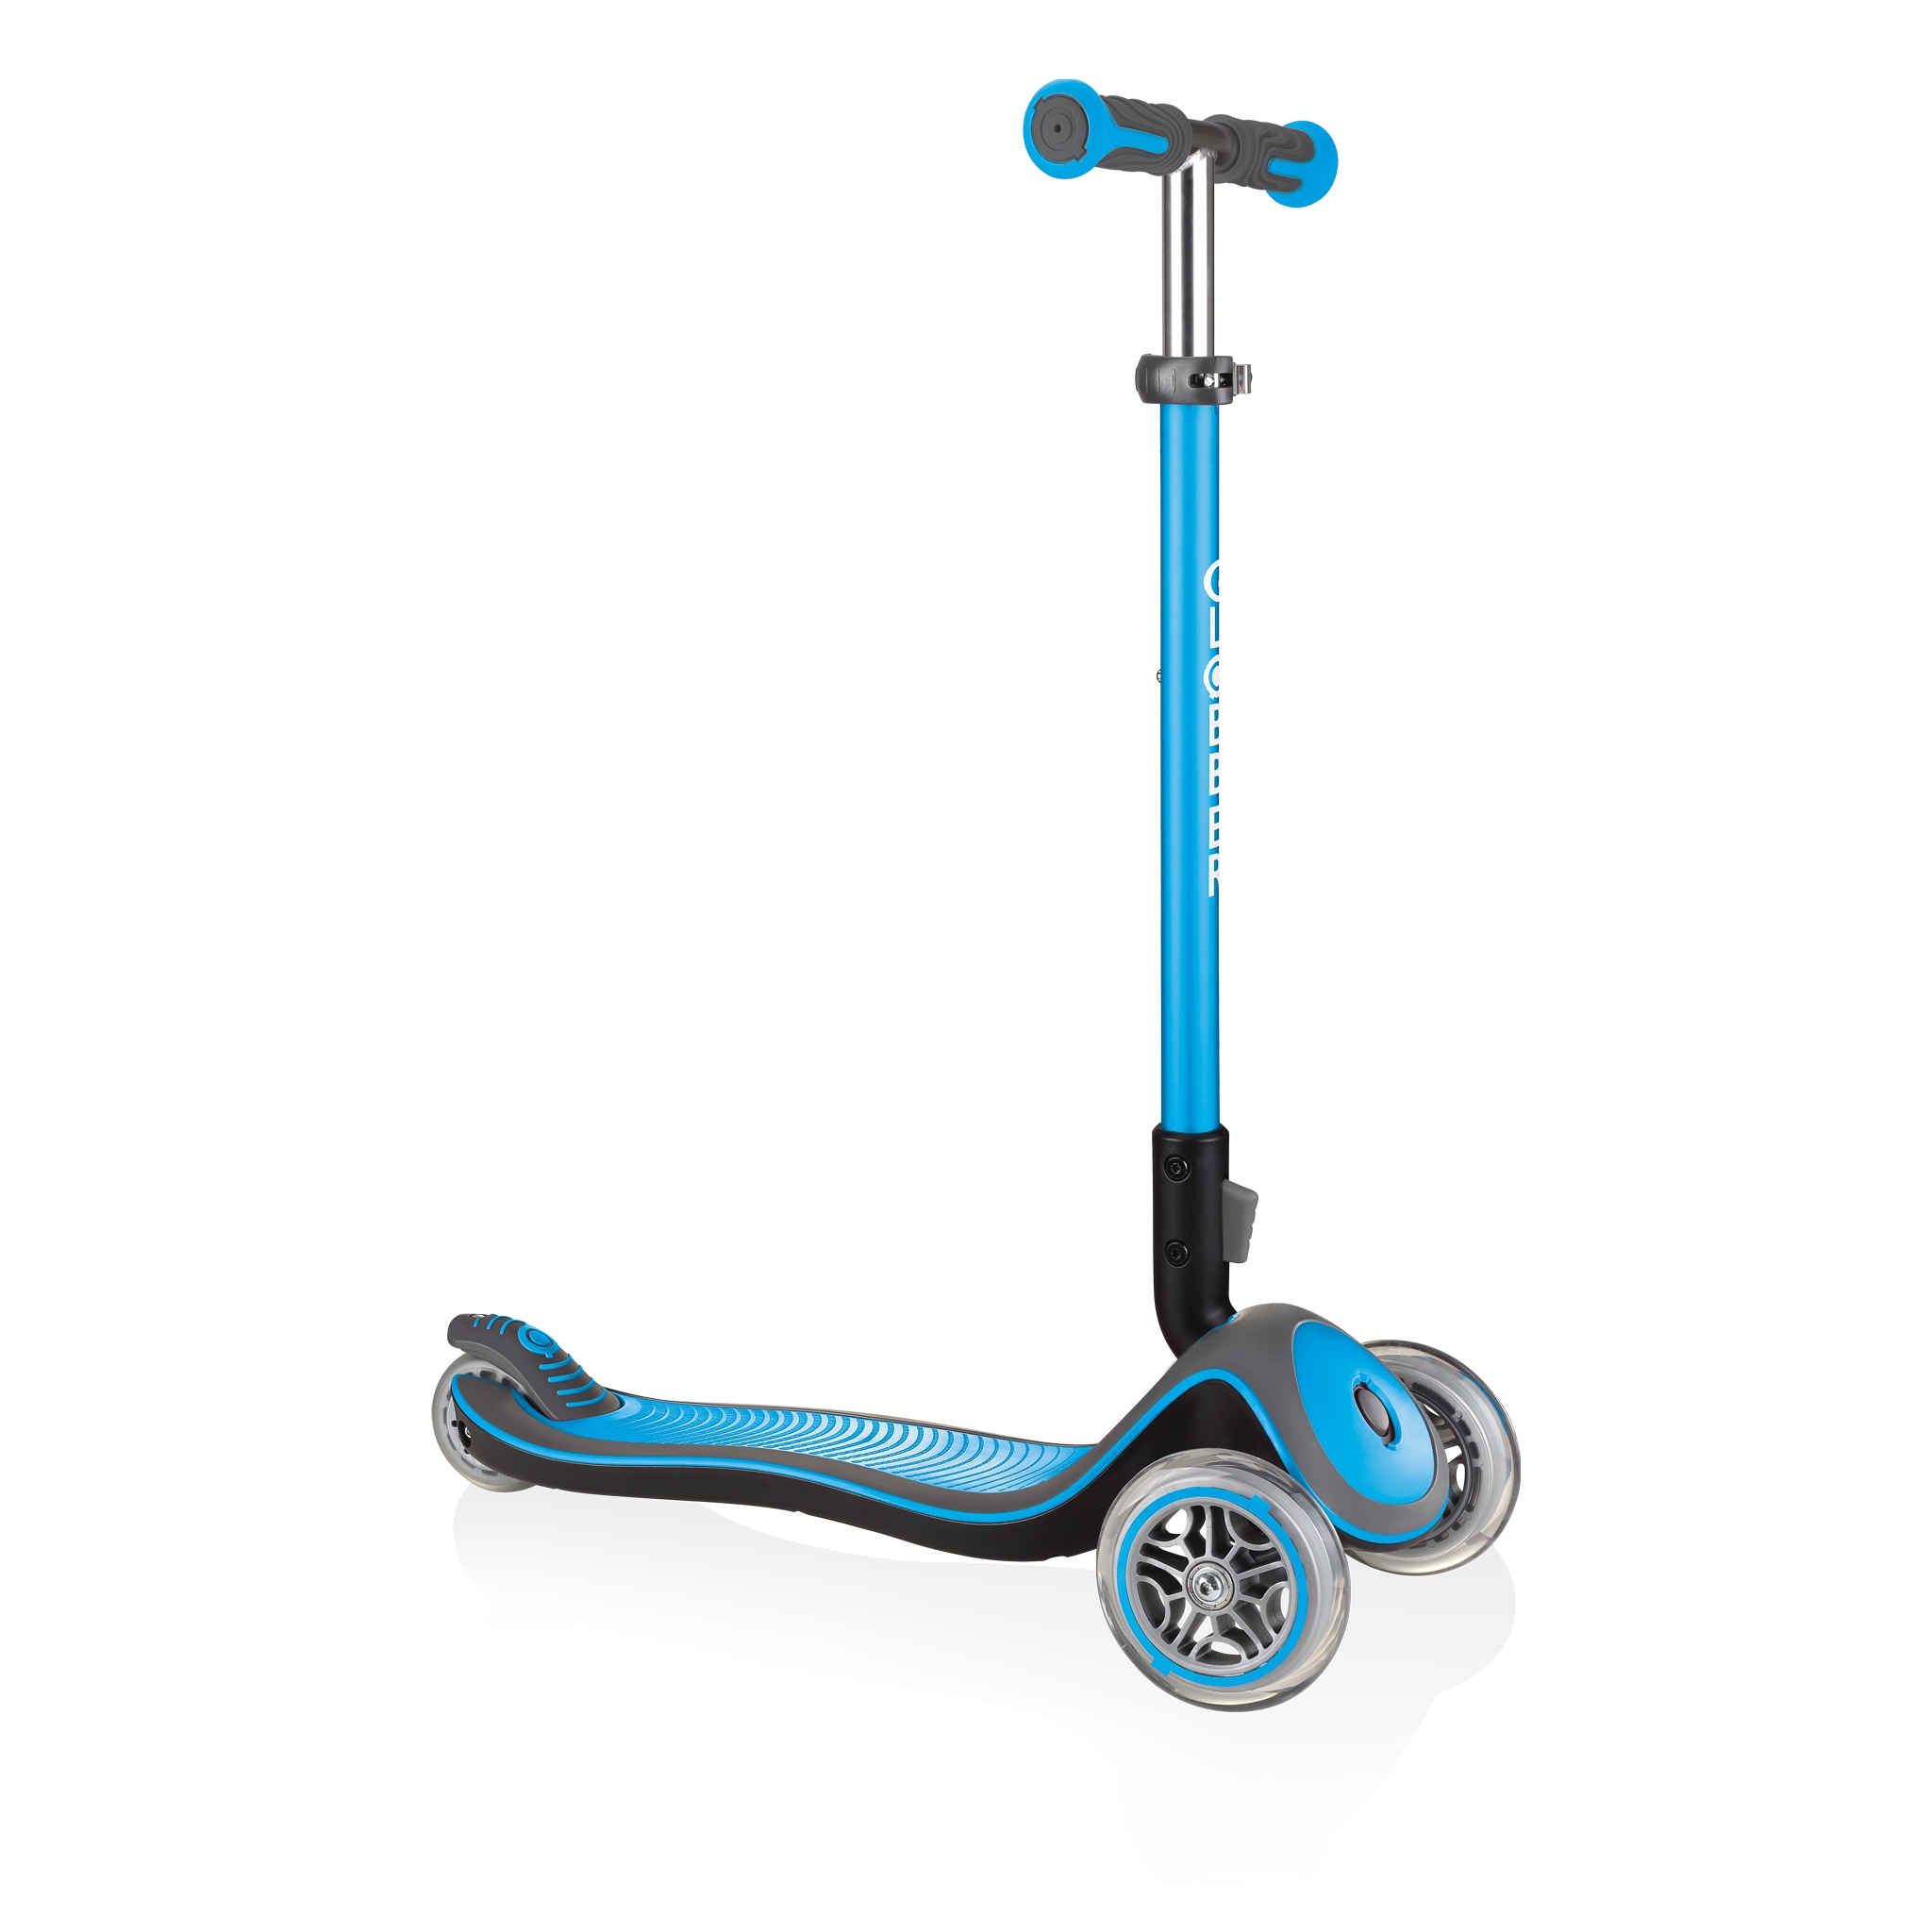 Globber-ELITE-DELUXE-Best-3-wheel-foldable-scooter-for-kids-aged-3+-sky-blue